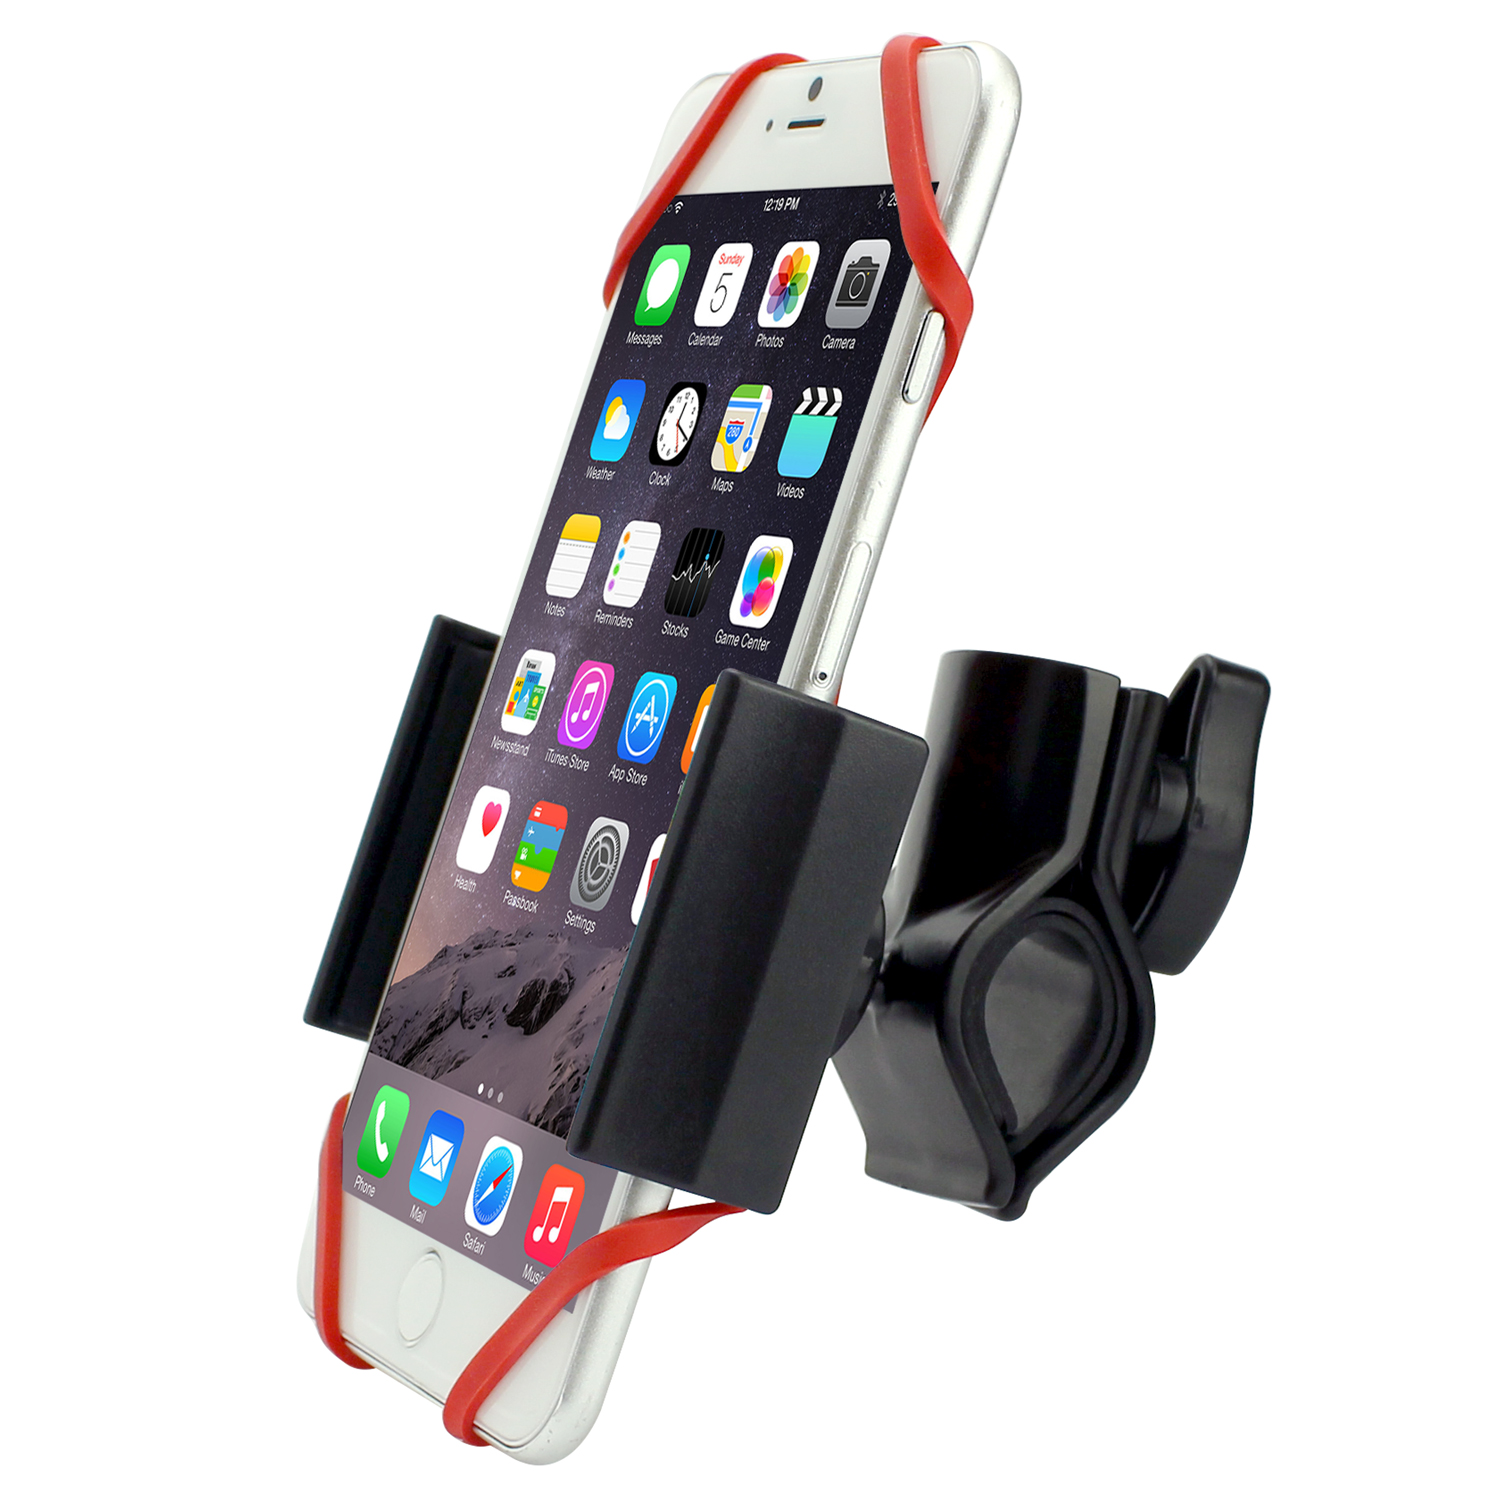 Moto Moto X 2nd Gen Bike Phone Mount Adjustable Black